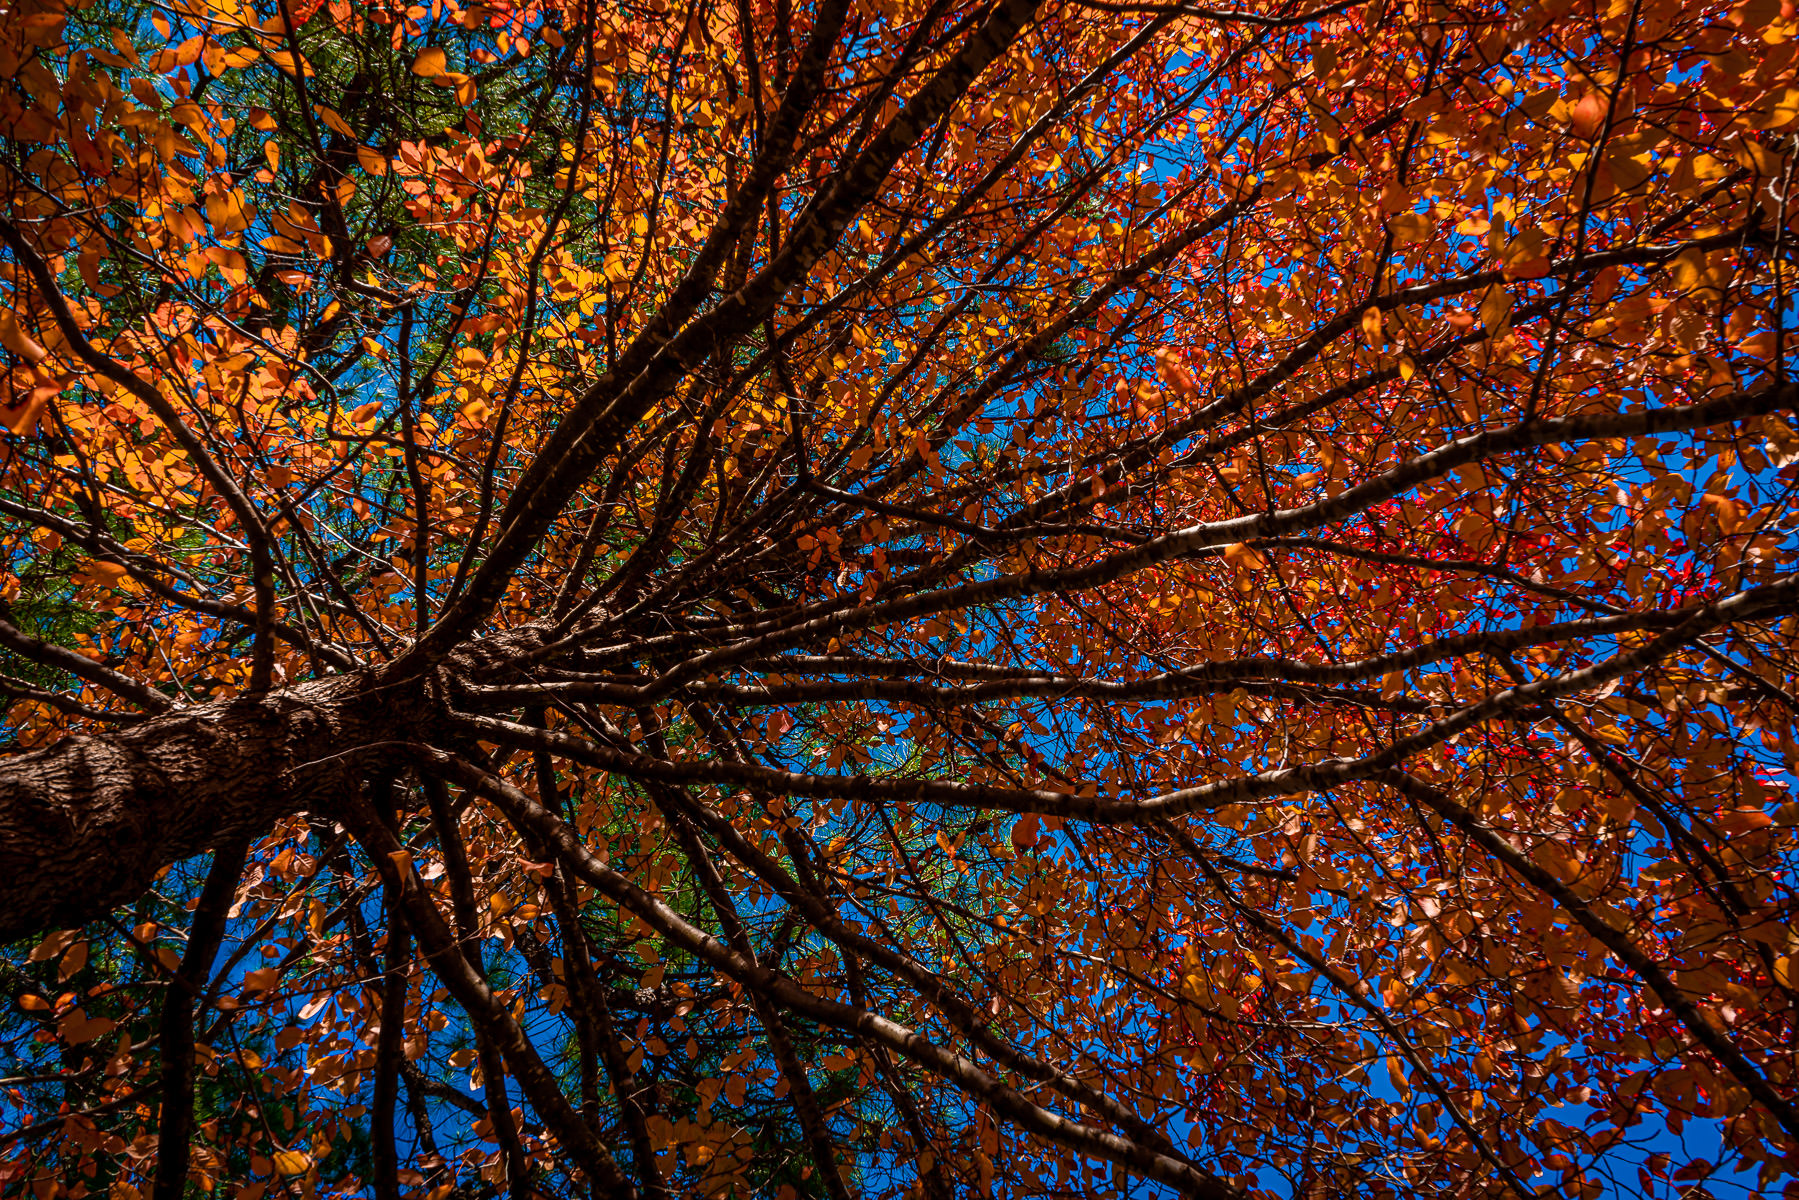 Autumn leaves on a tree spotted in Tyler, Texas.